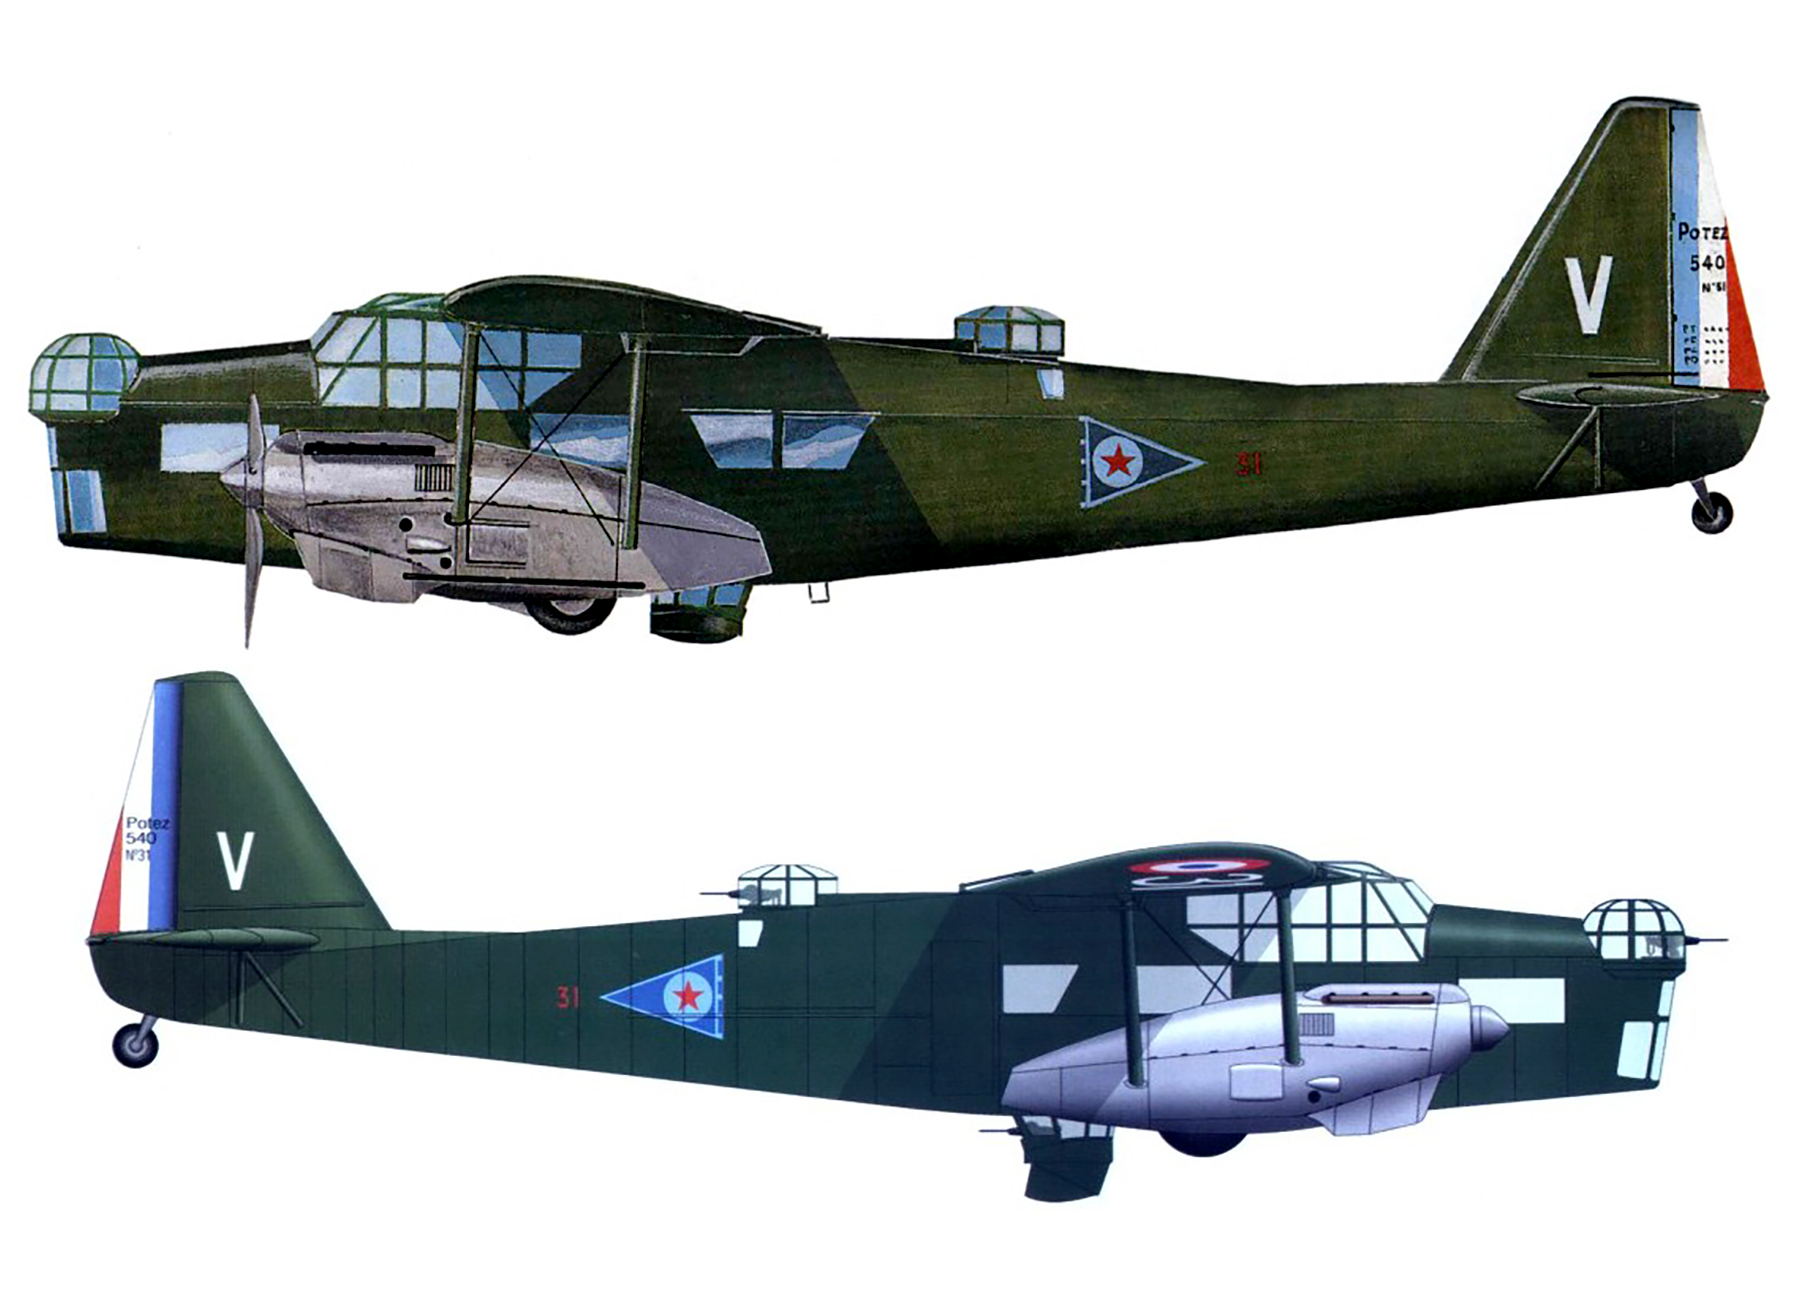 French Airforce Potez 540 sn31 Red 31 battle of France 1940 profile 0A